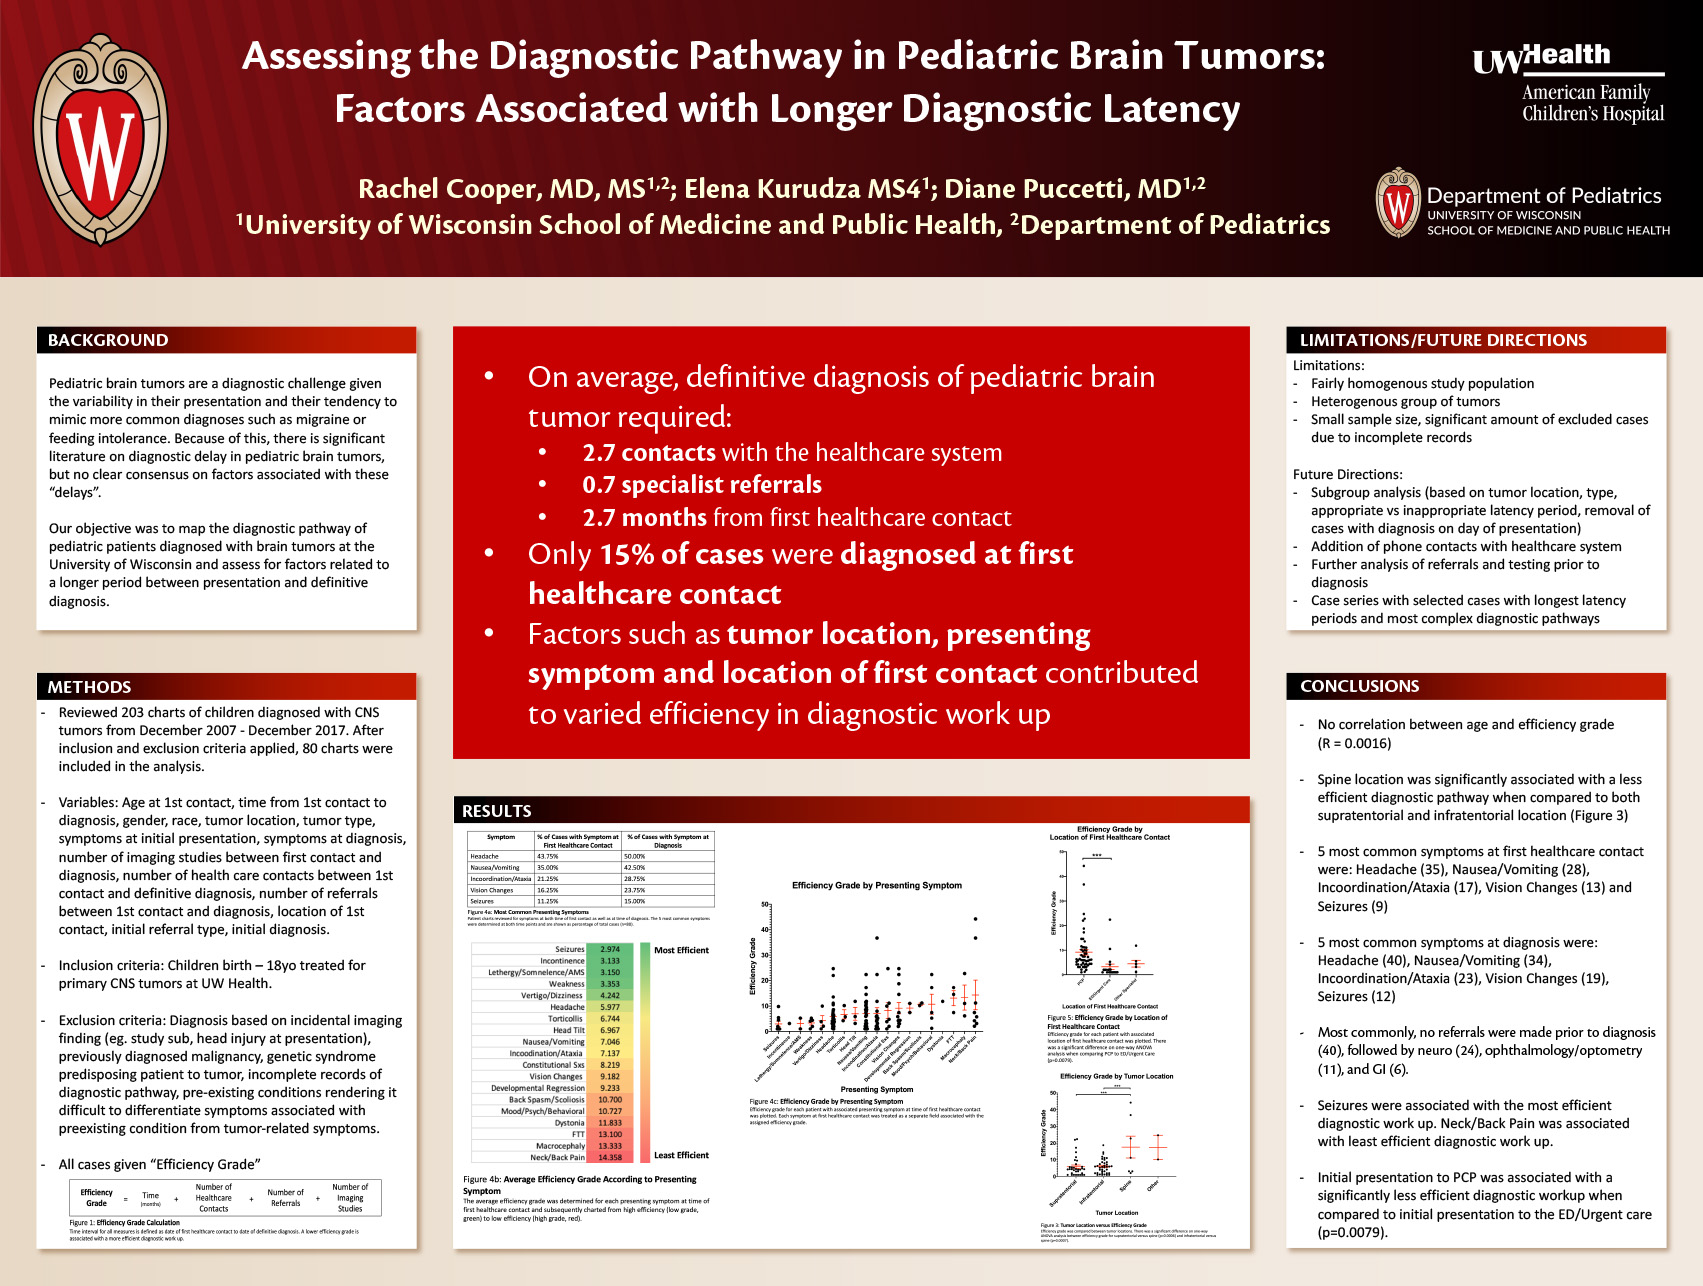 Assessing the Diagnostic Pathway in Pediatric Brain Tumors: Factors Associated with Longer Diagnostic Latency poster image